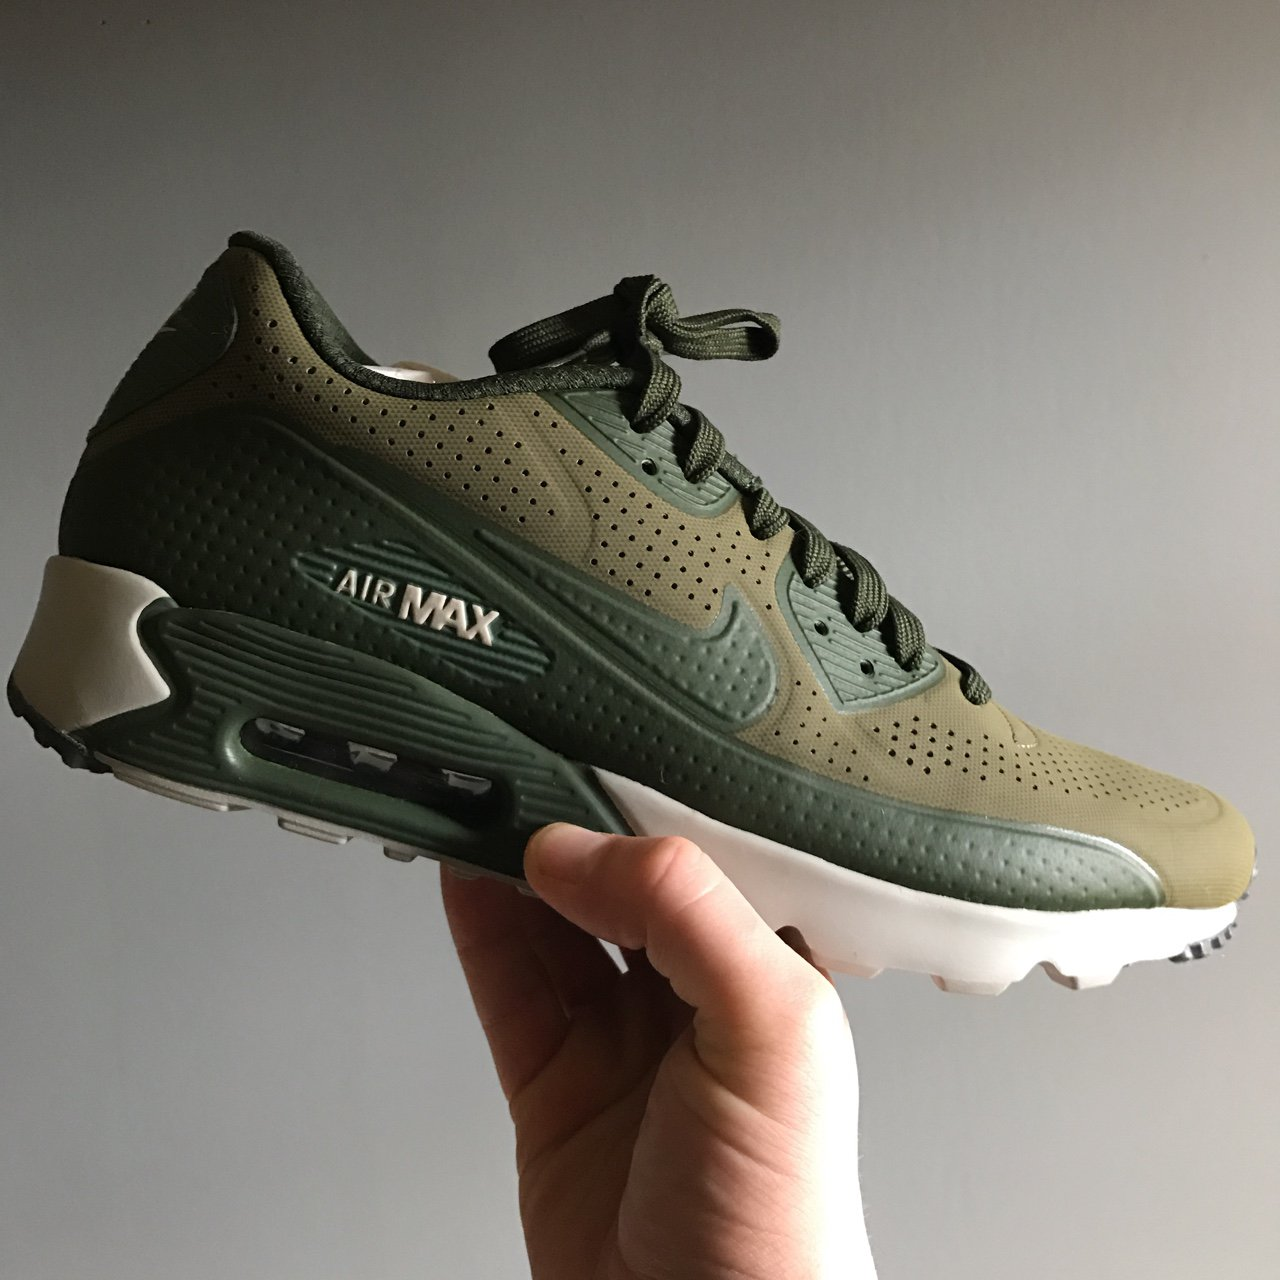 63d578db14 @kmurph17. 2 years ago. Glasgow, UK. Nike Air Max 90 Ultra Moire 'Medium  Olive / Carbon Green' UK MENS ...